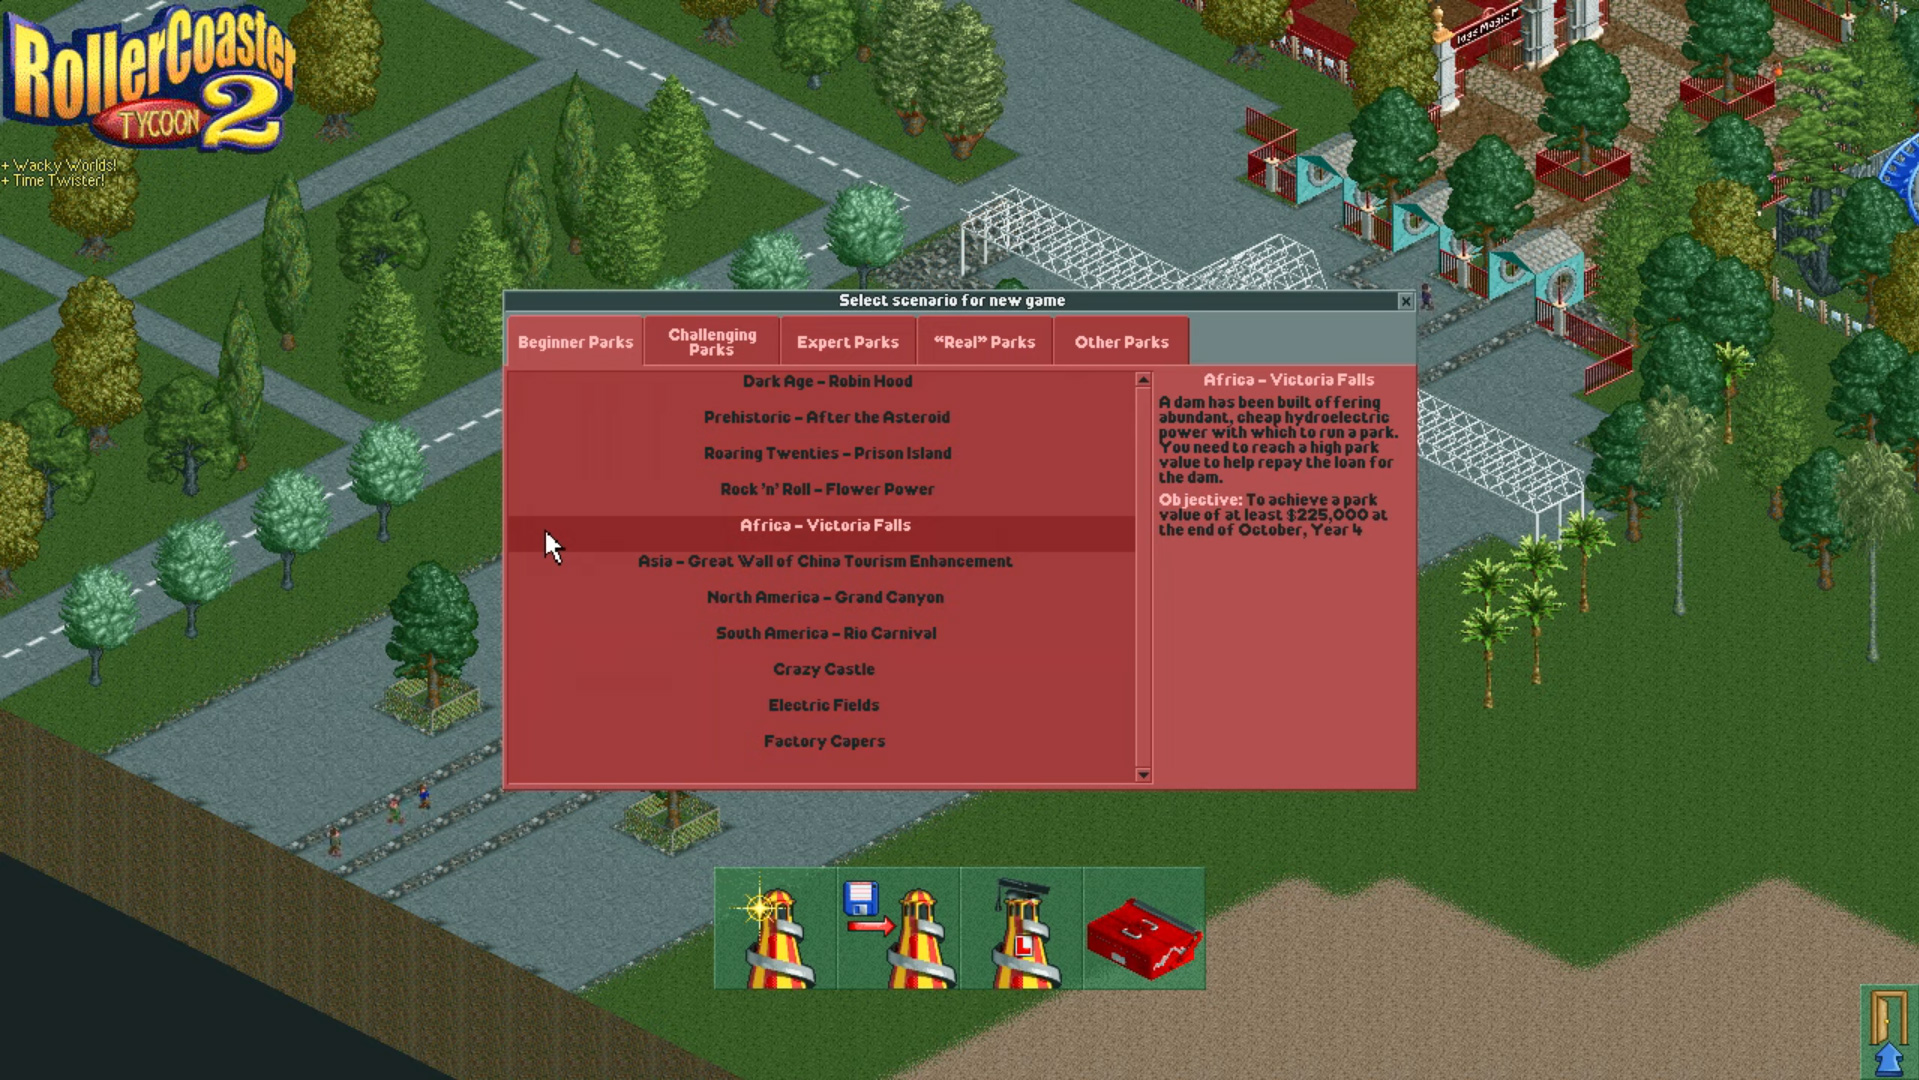 Roller Coaster Tycoon 2 Level Select